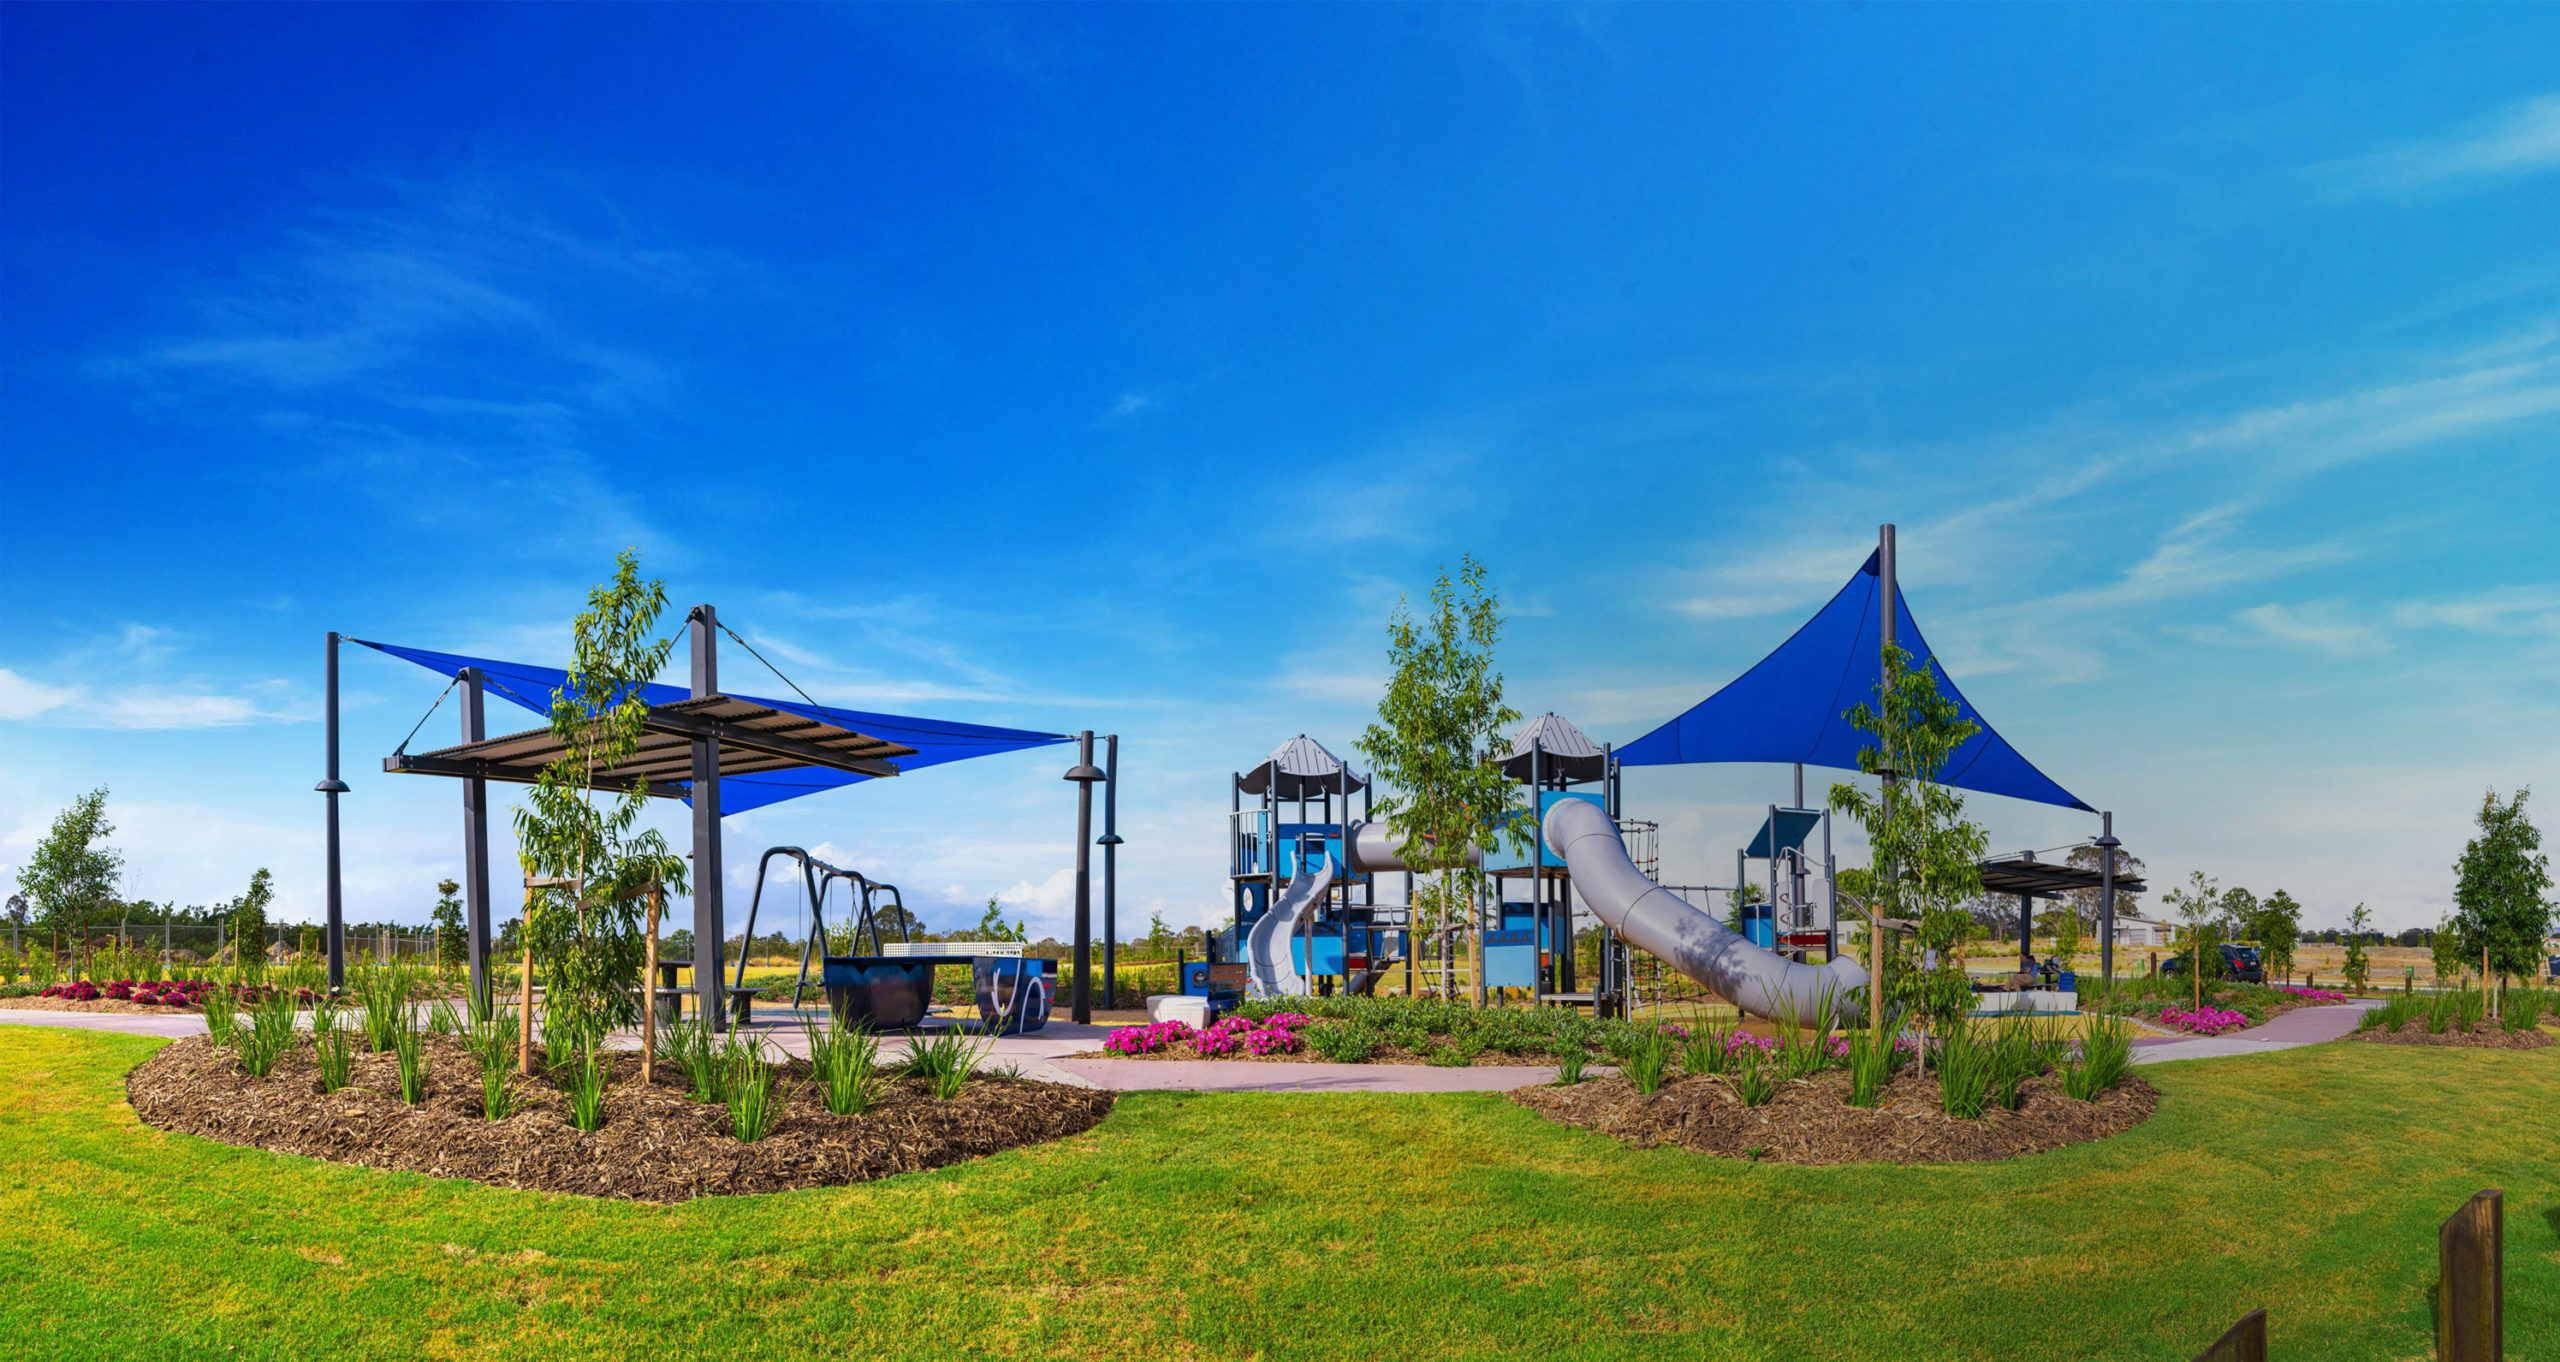 Panoramic Image of Amity Park